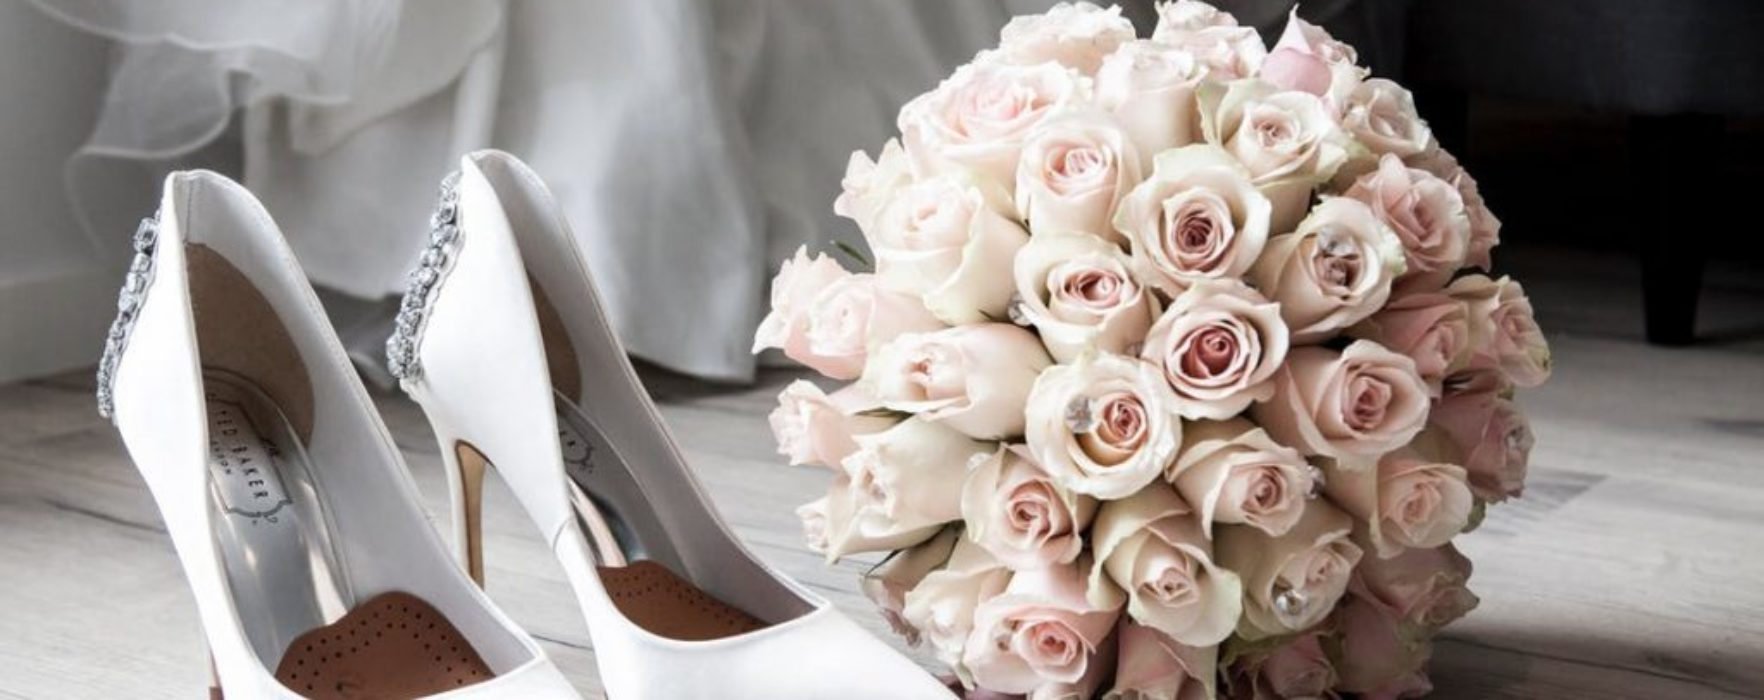 Planning a wedding is more labour-intensive than ever